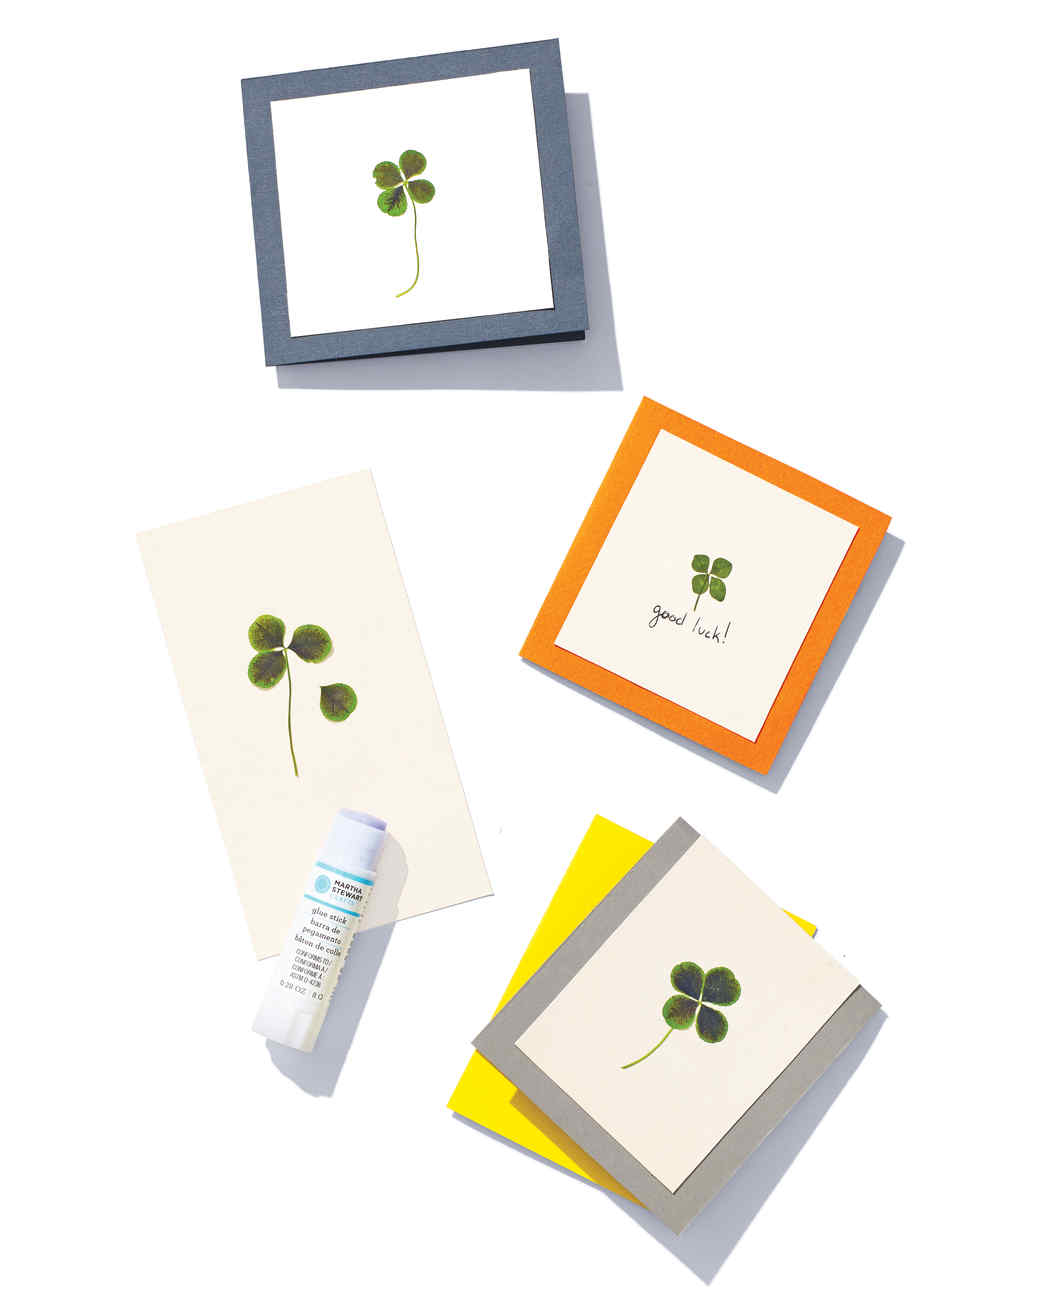 pressed-clover-card-023-d111686.jpg